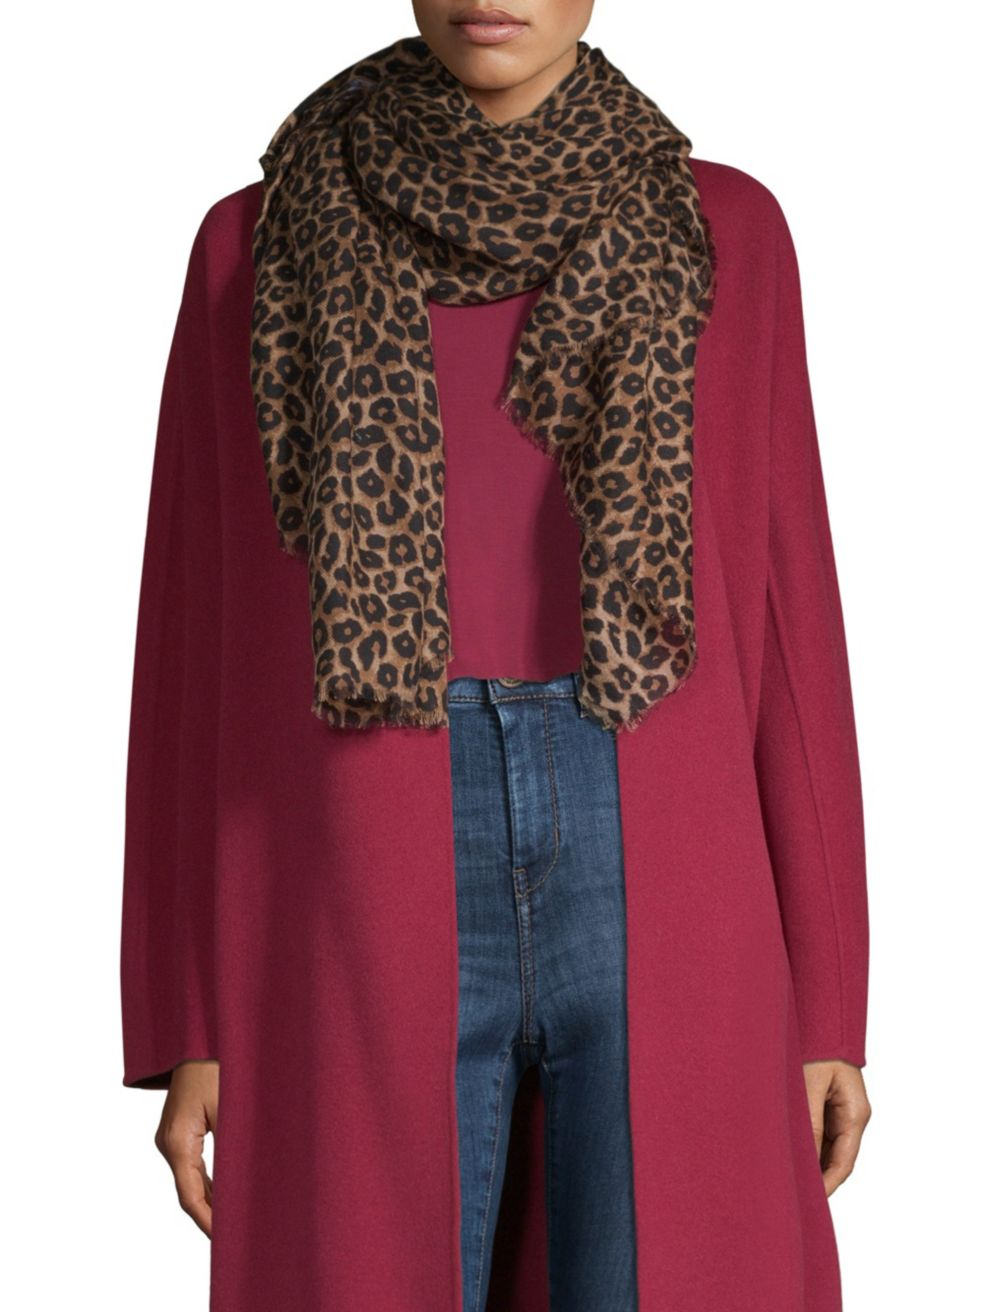 Weekend Max Mara  - 125 USD